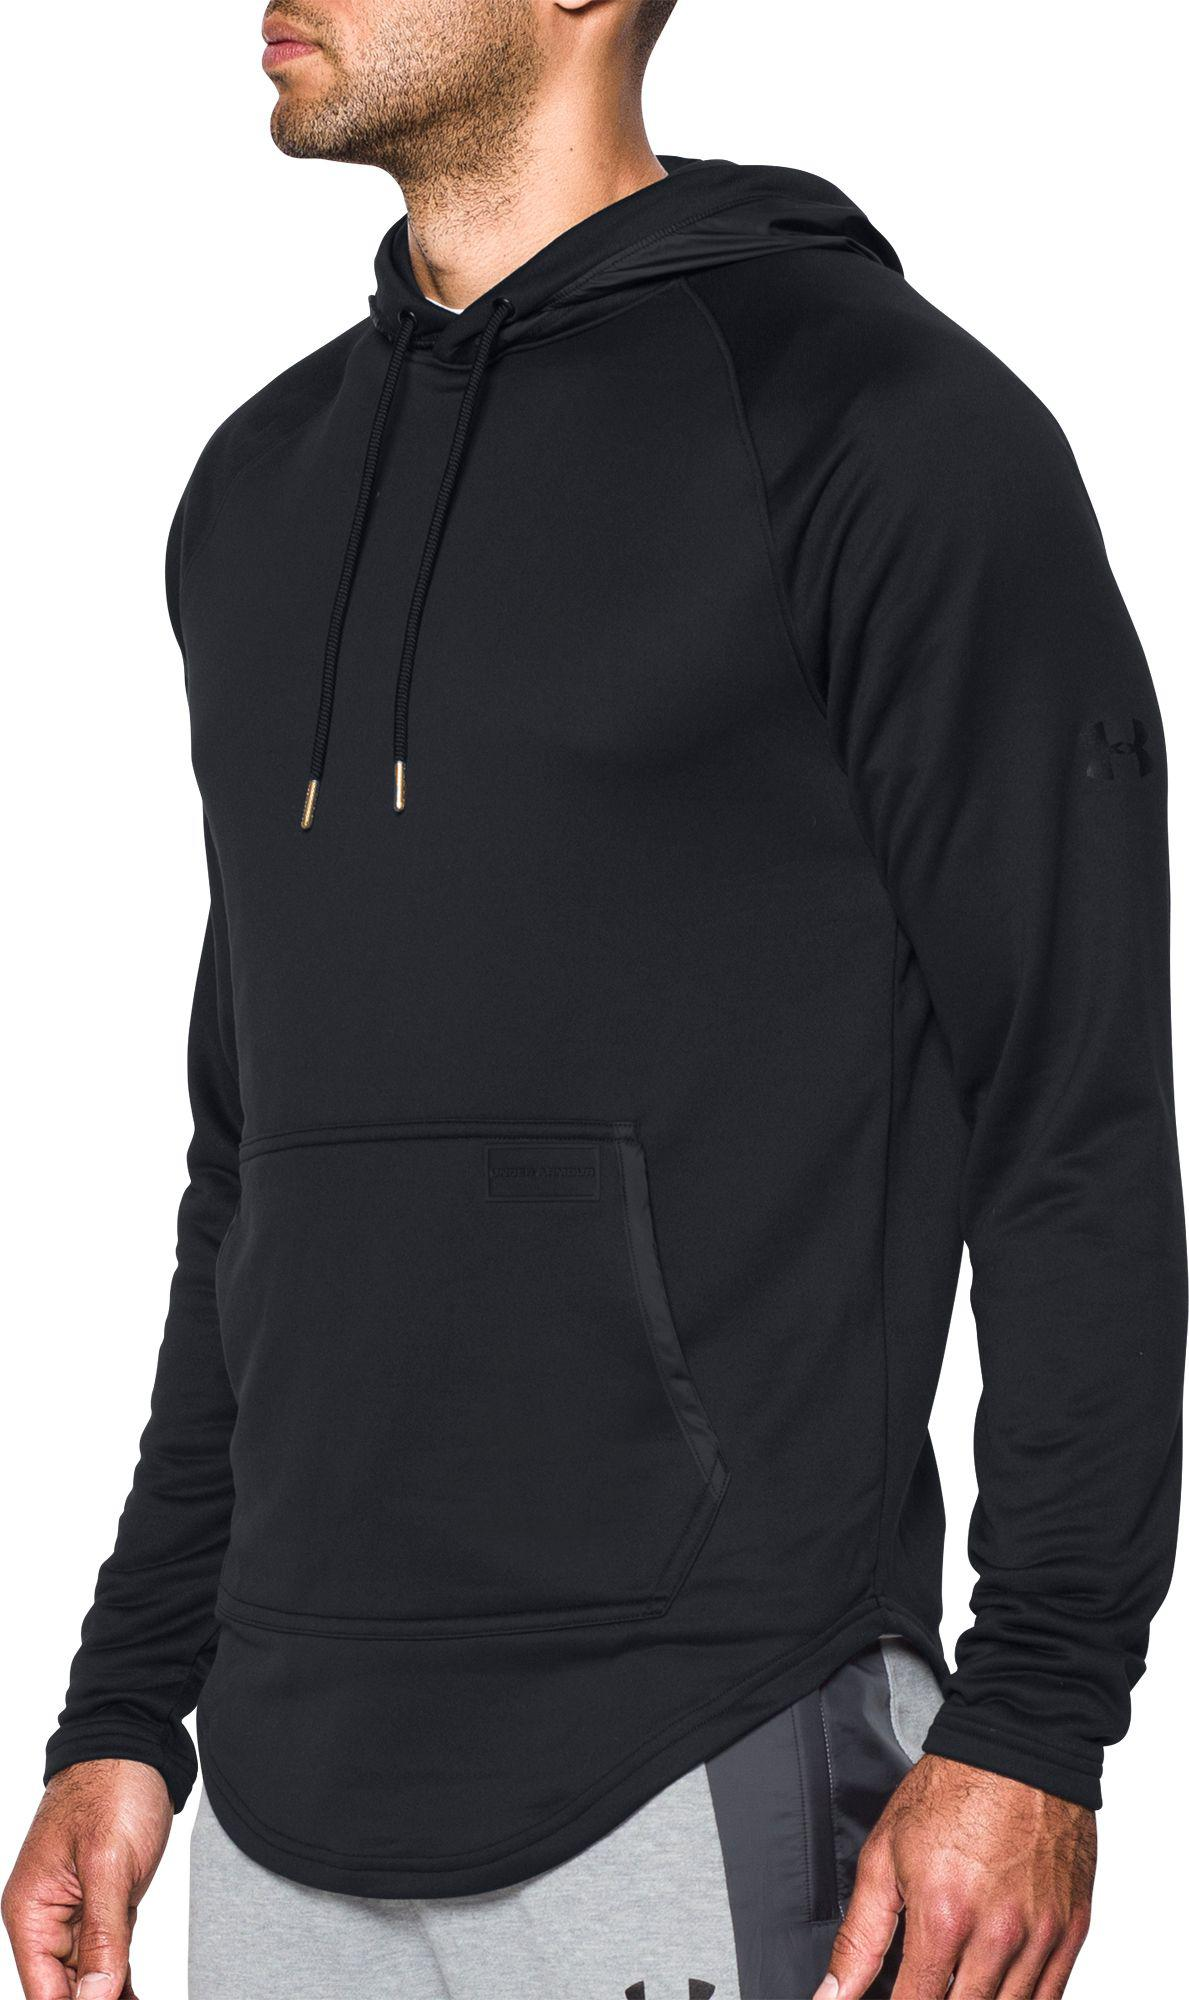 9d5f11a6f Under Armour Pursuit Hoodie in Black for Men - Lyst